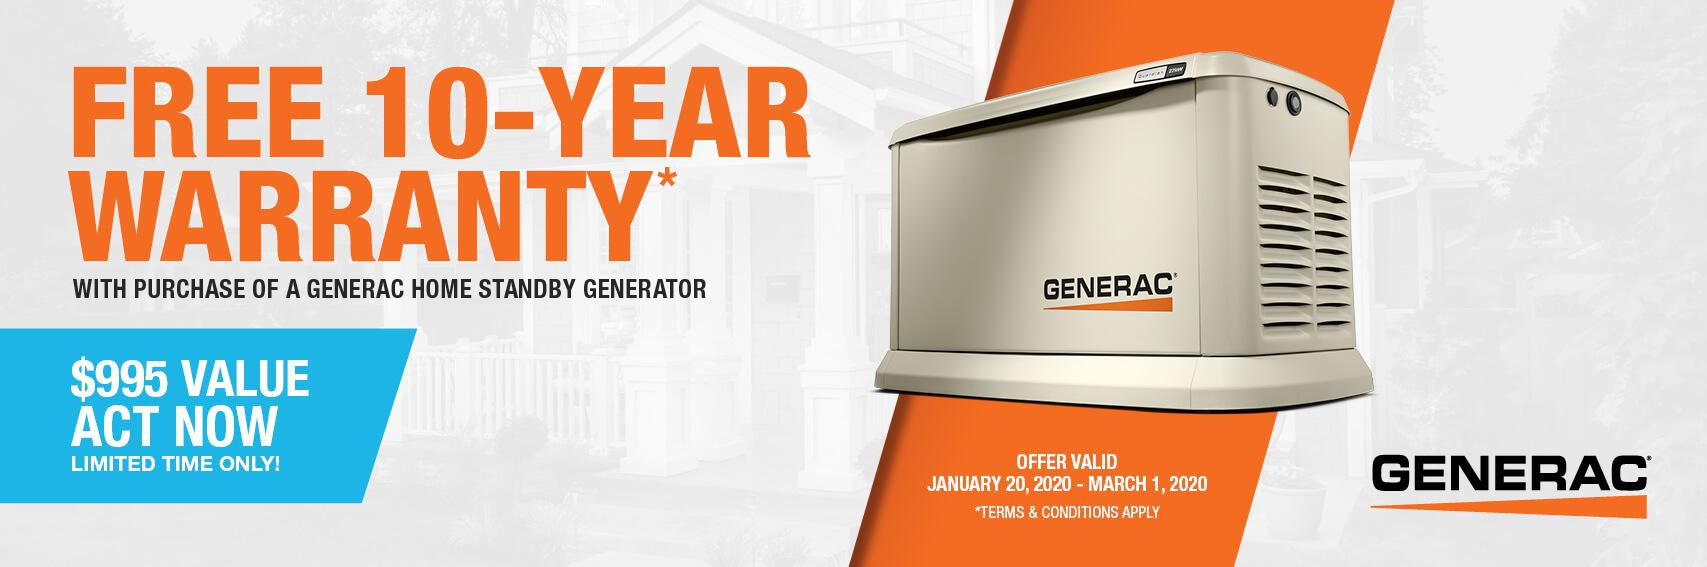 Homestandby Generator Deal | Warranty Offer | Generac Dealer | Jenison, MI